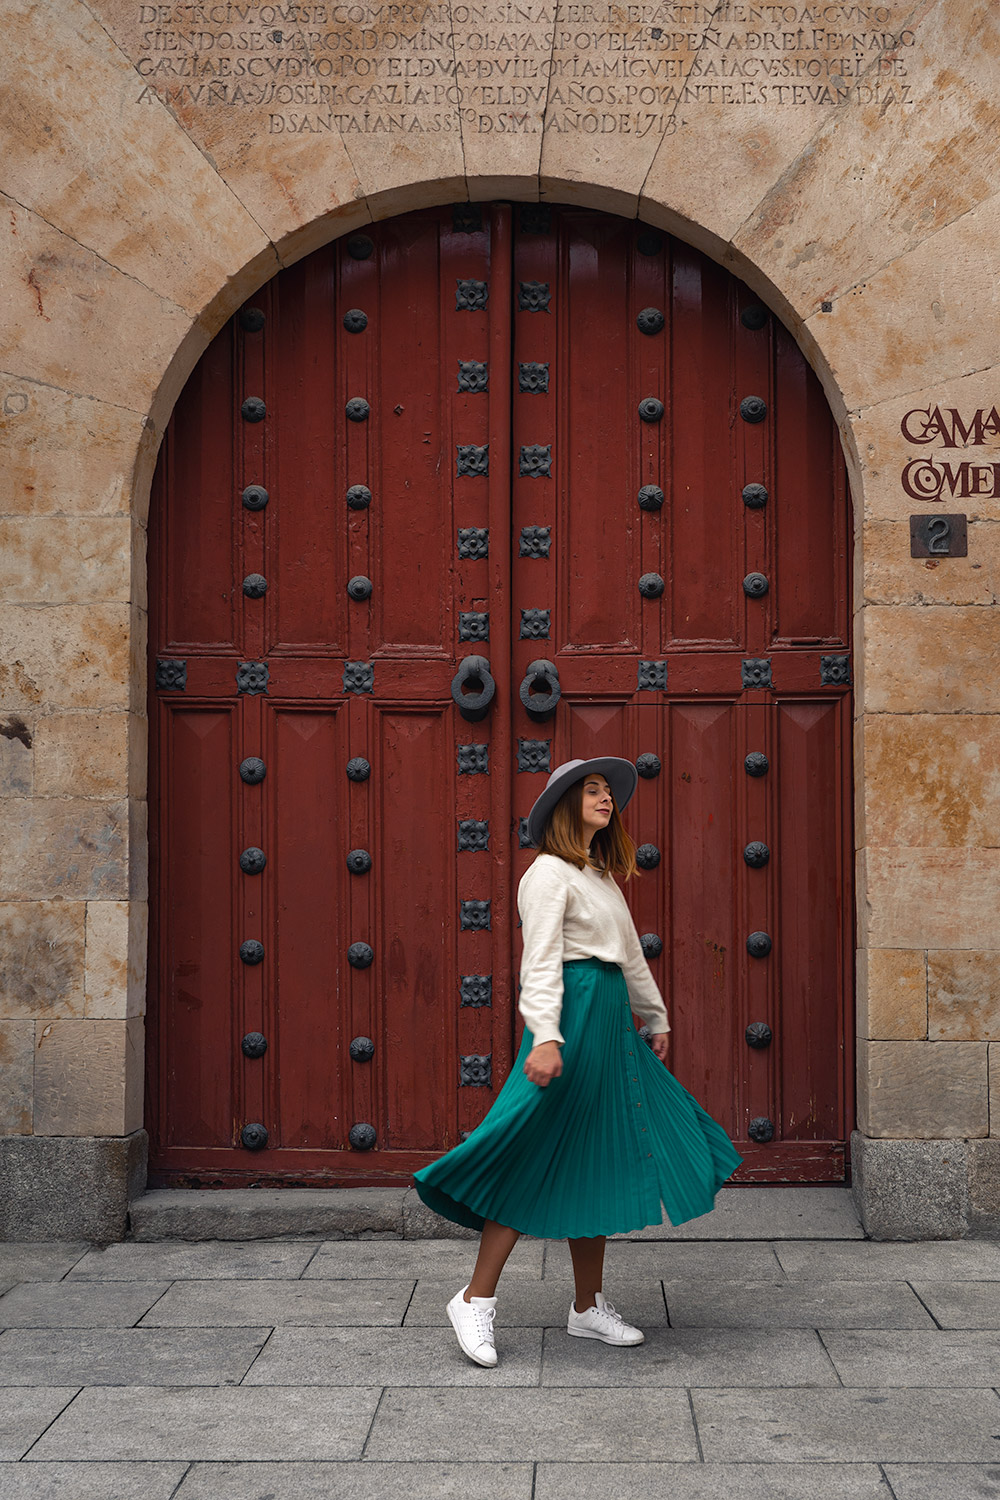 Maria dancing in the front of a pretty door in Salamanca, Spain